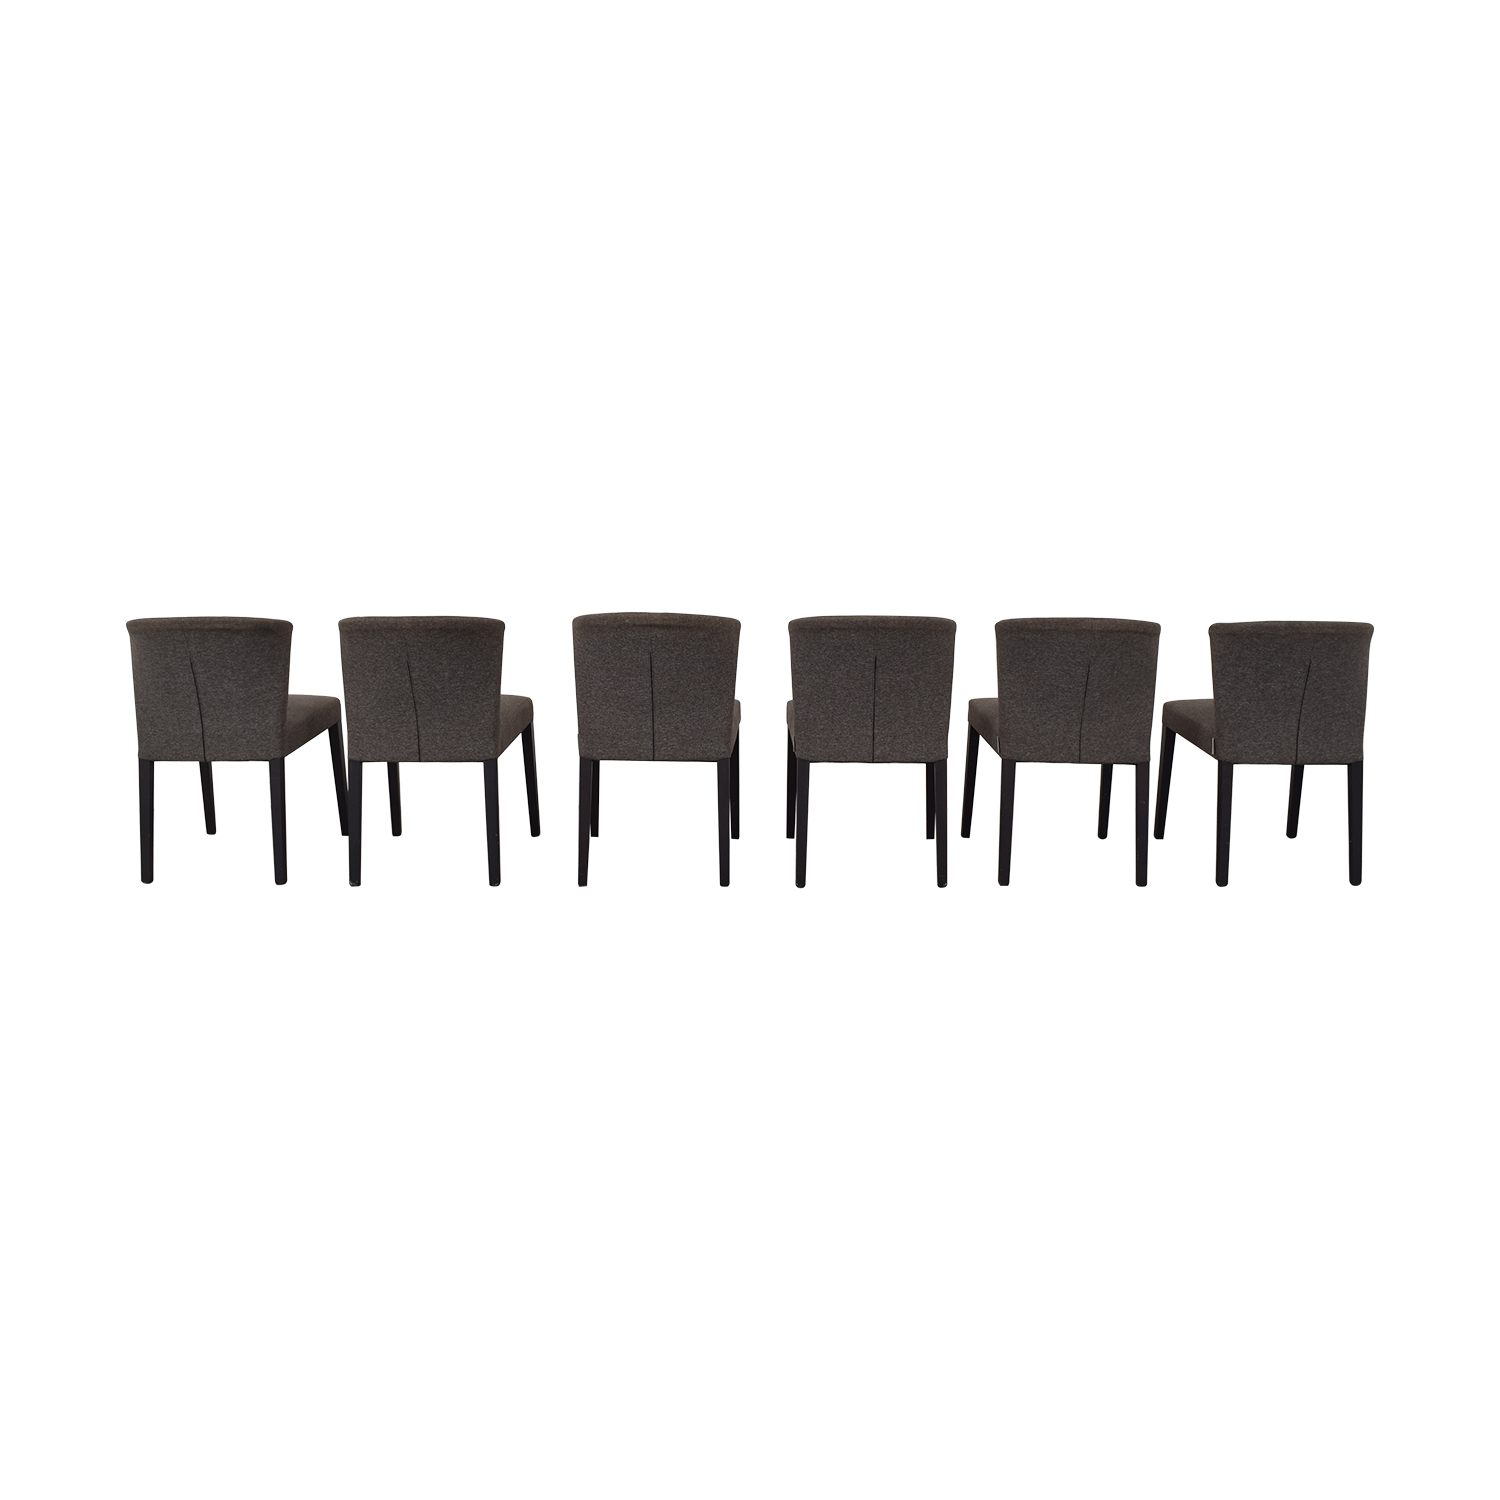 Heal's of London Heals of London Habitat Grey Upholstered Dining Chairs dimensions